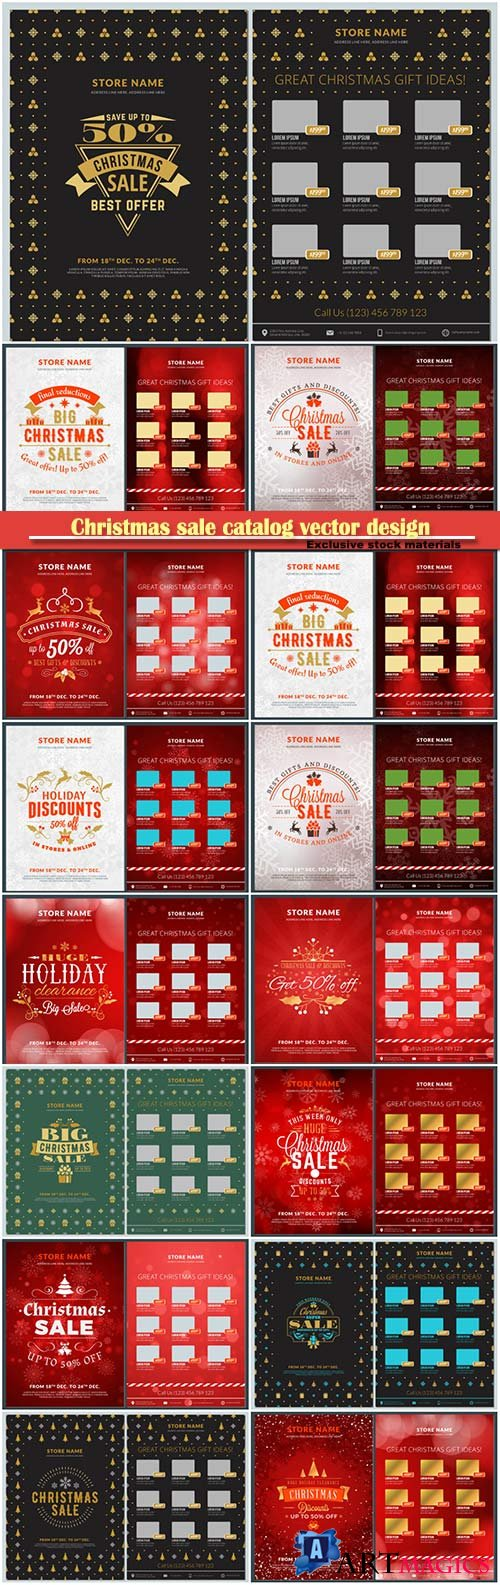 Christmas sale catalog vector design, business flyer template